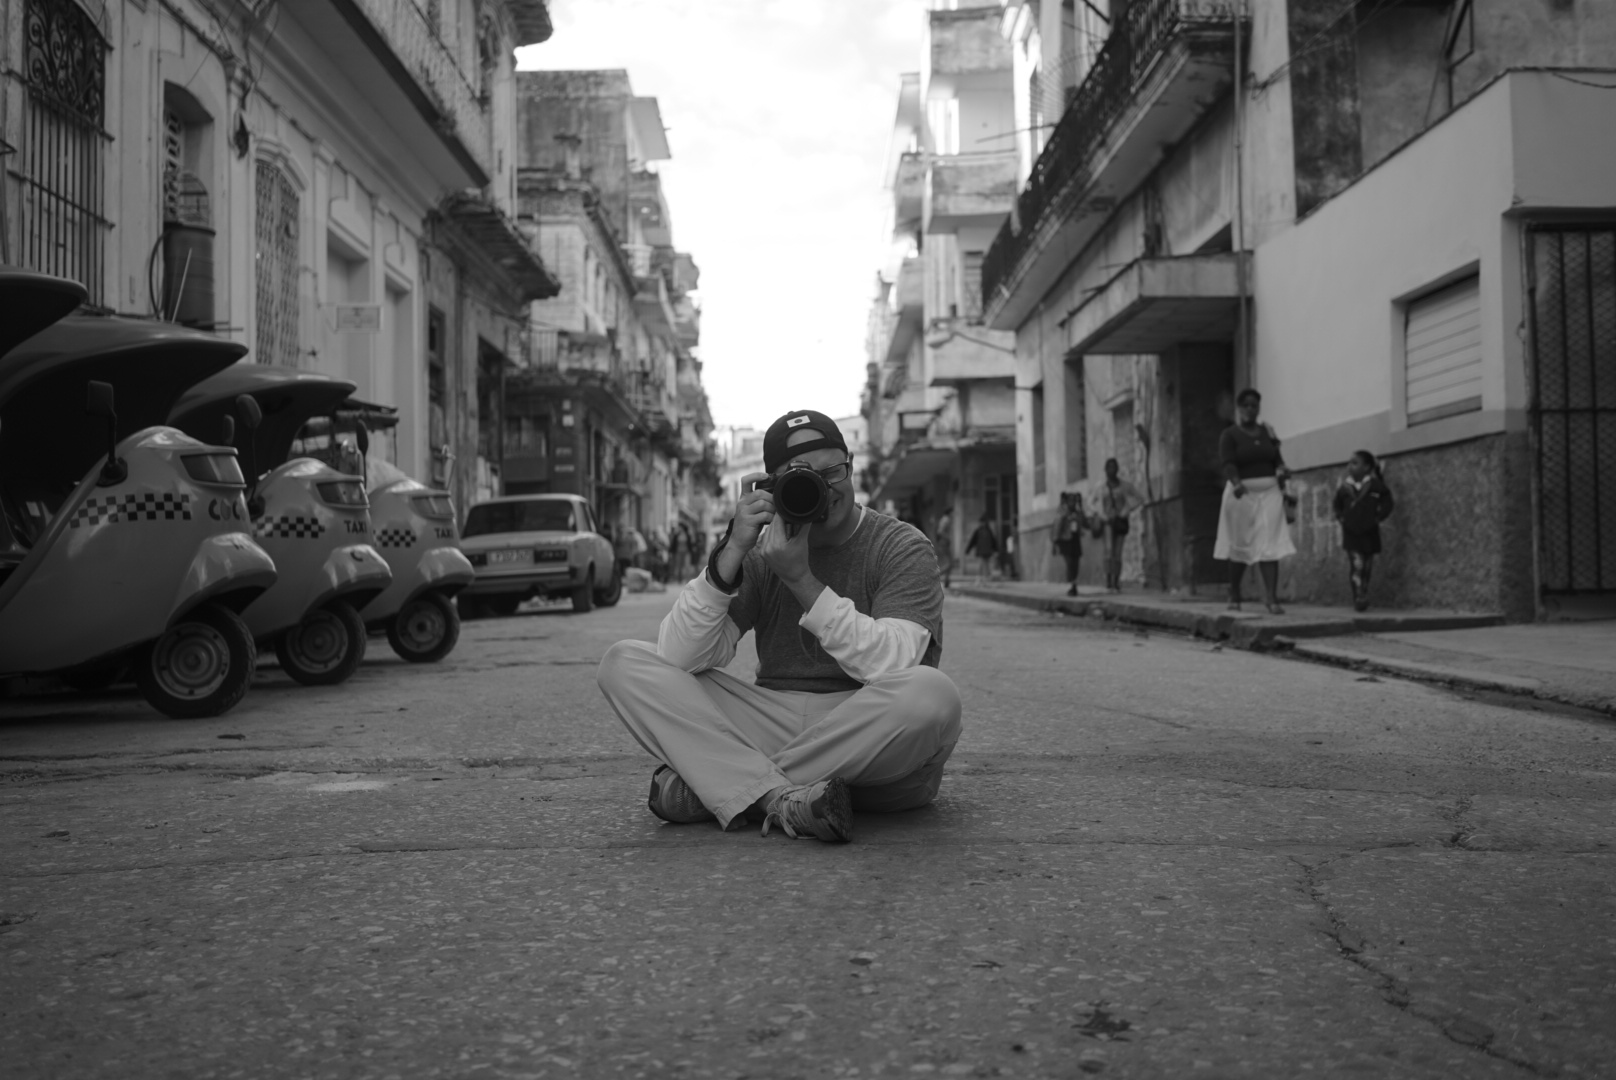 My favorite place in the world, shooting in the streets of Havana, November, 2014. Photo byDonovan Pee Mahoney.